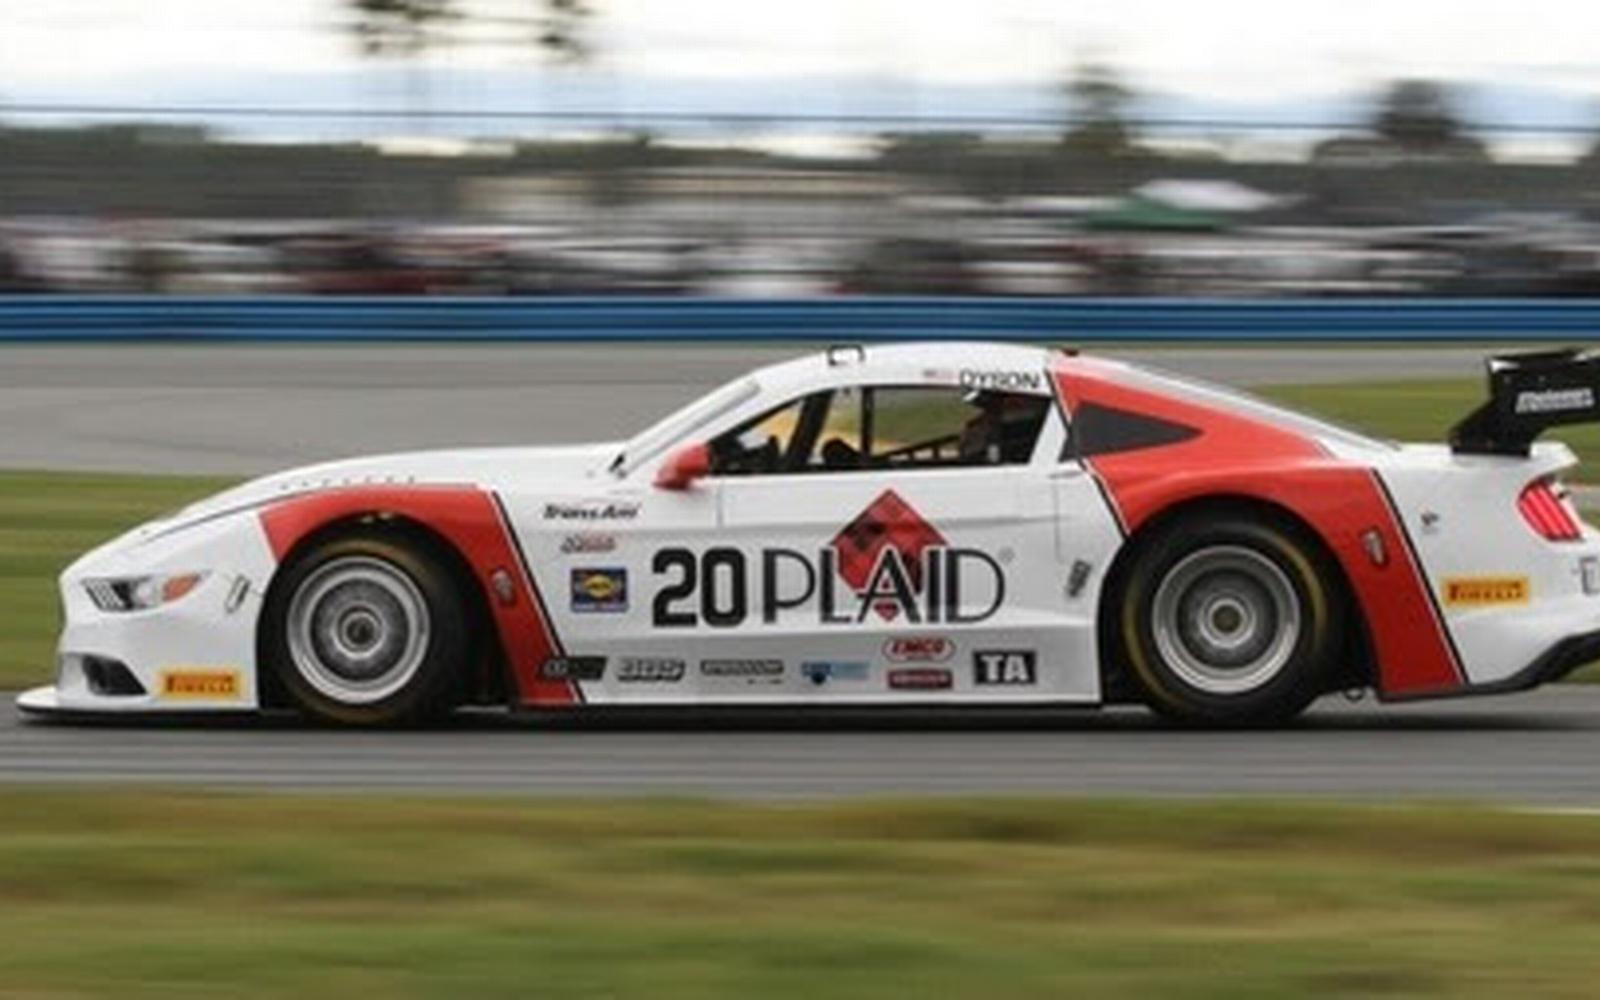 DYSON SWEEPS DAYTONA TRANS AM FINALE, TAKES 2ND IN 2019 SERIES CHAMPIONSHIP